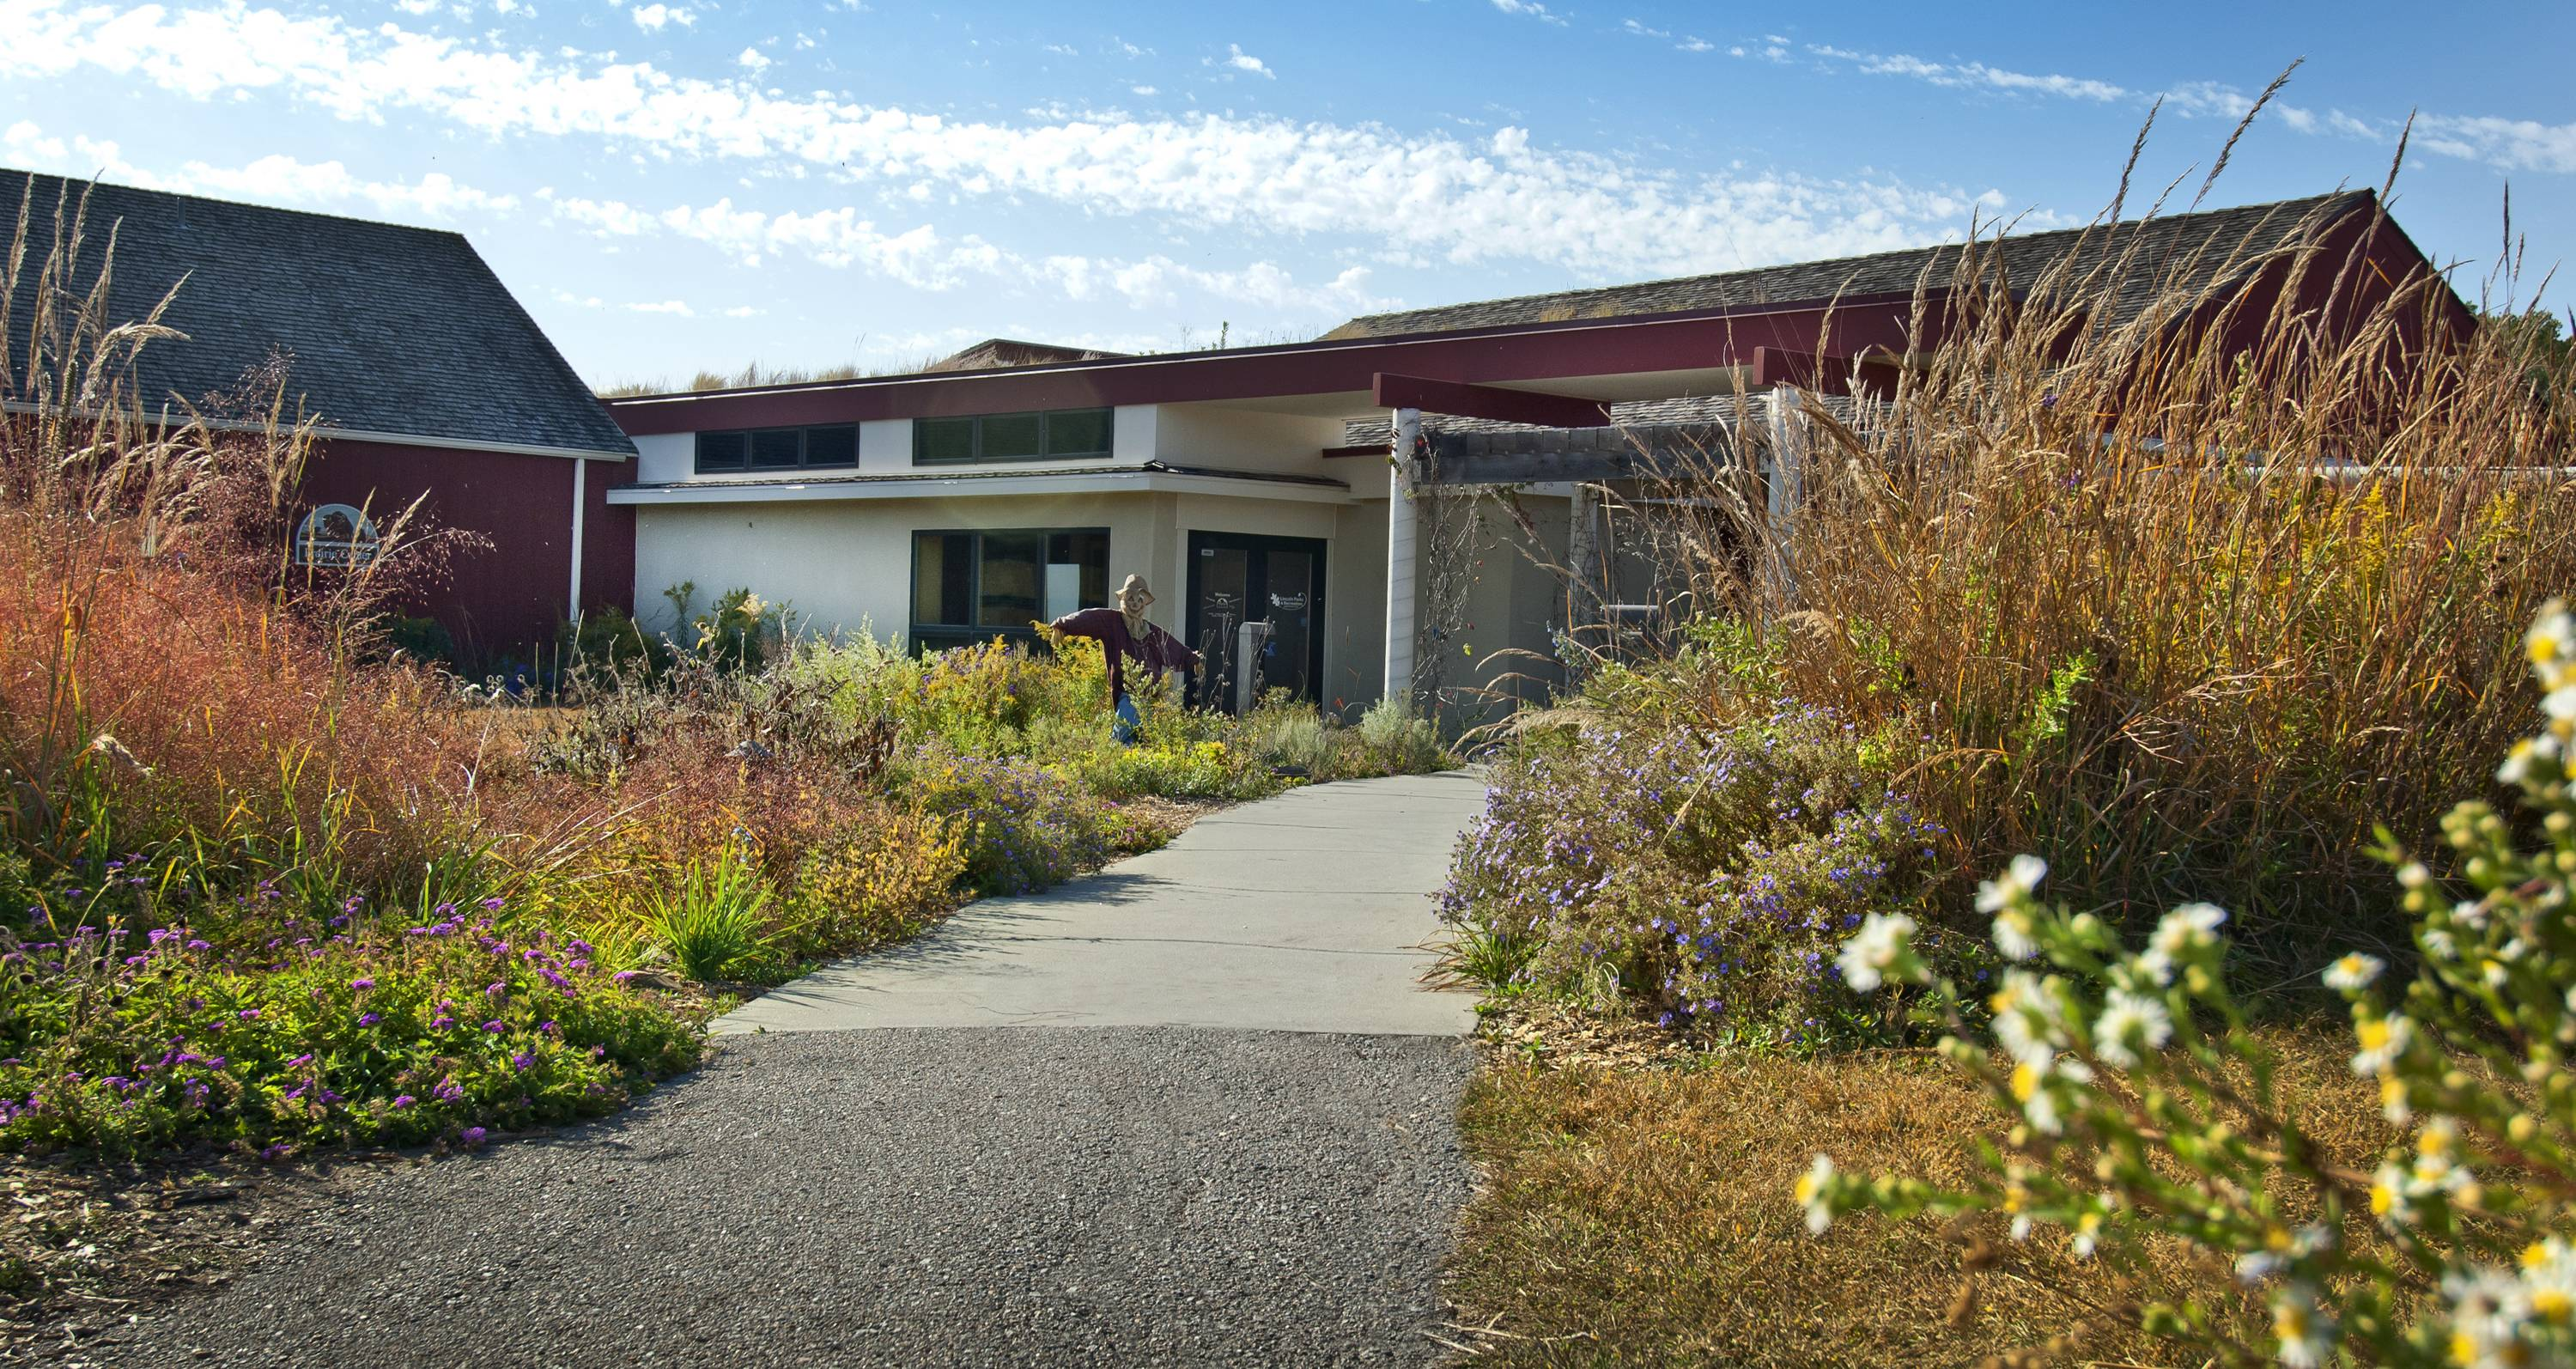 The Pioneer Park Nature Center offers exhibits, gardens, wildlife and trails through a mix of prairie, woodlands, wetlands and streams. It's one of a number of free things to see and do in Lincoln.